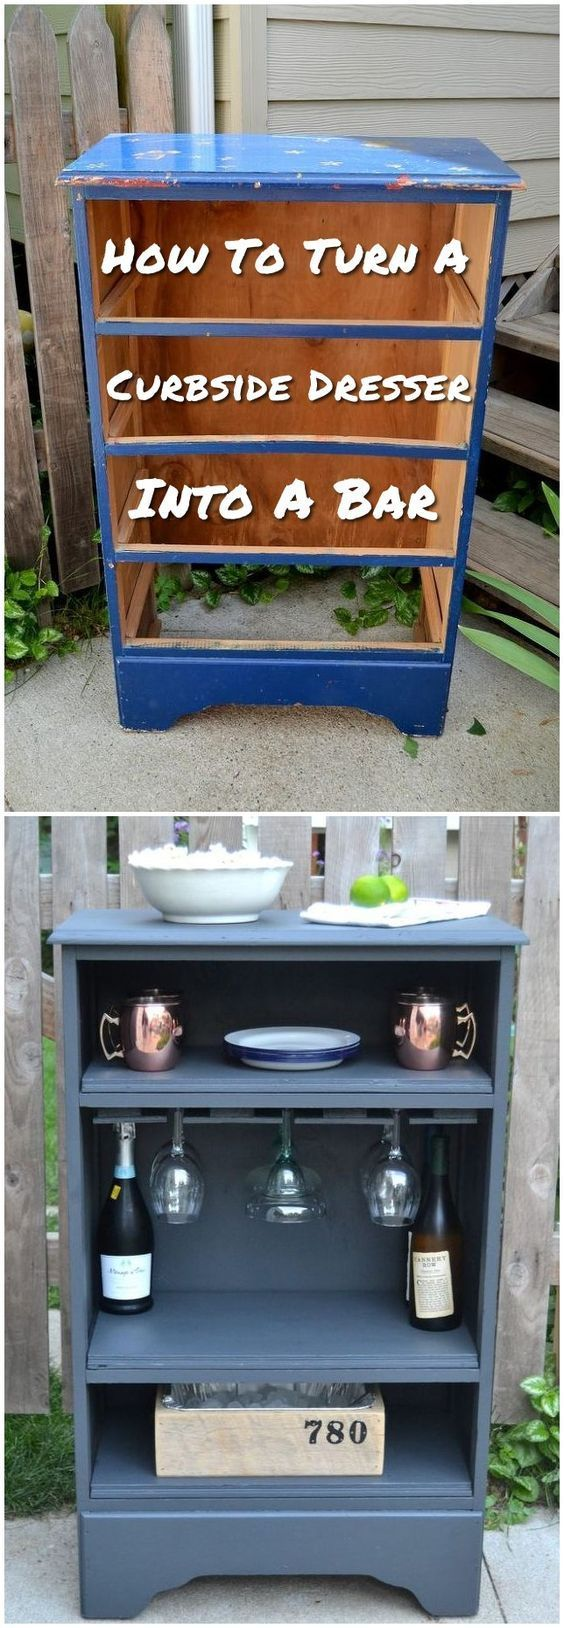 How to turn curbside dresser into a bar